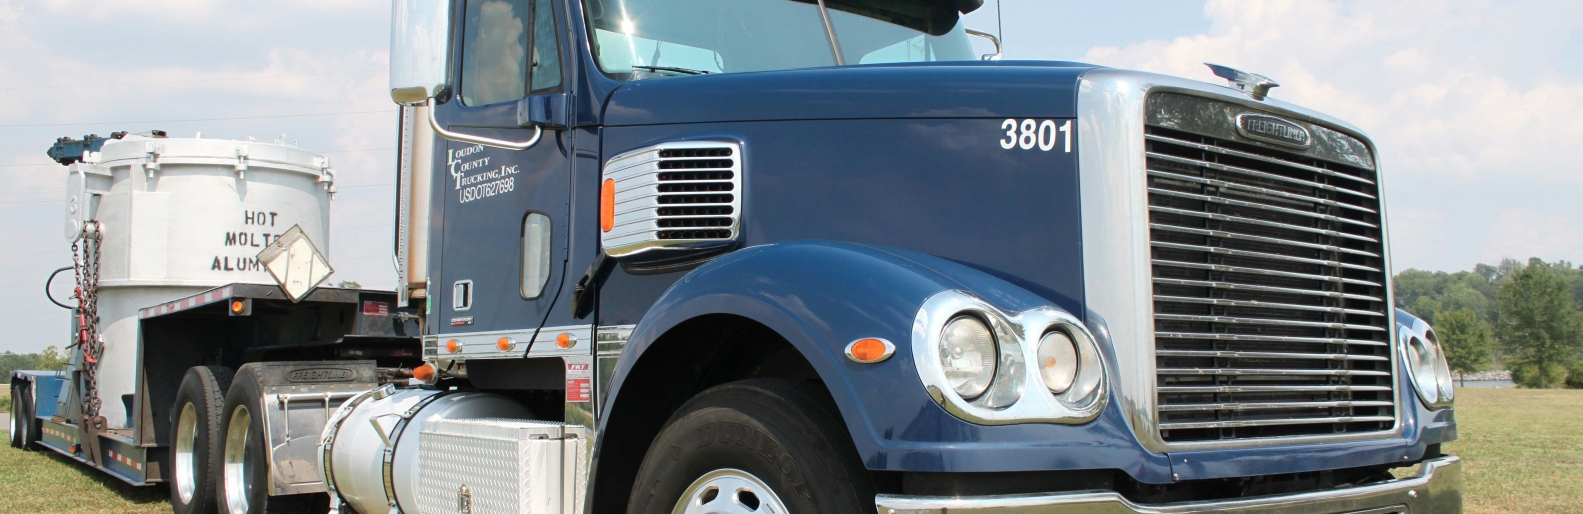 Loudon County Trucking | Hiring CDL Drivers in Eastern US